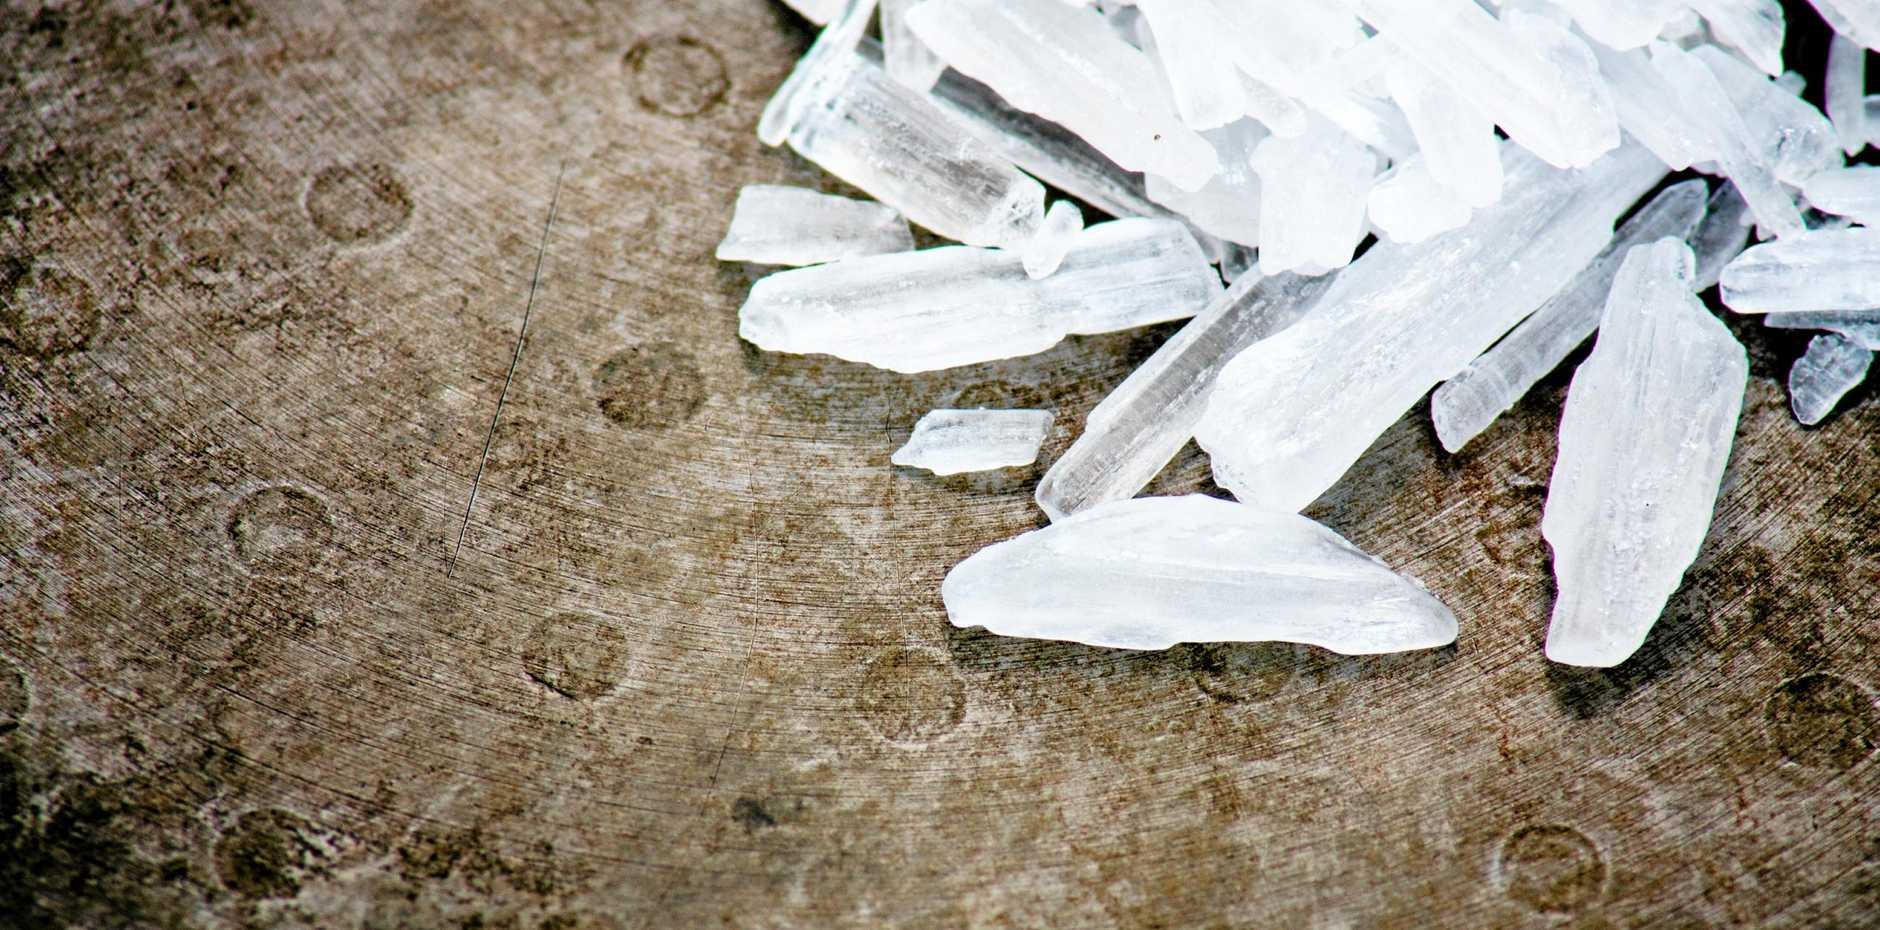 A man has been arrested after he was caught with a bum bag full of ice.